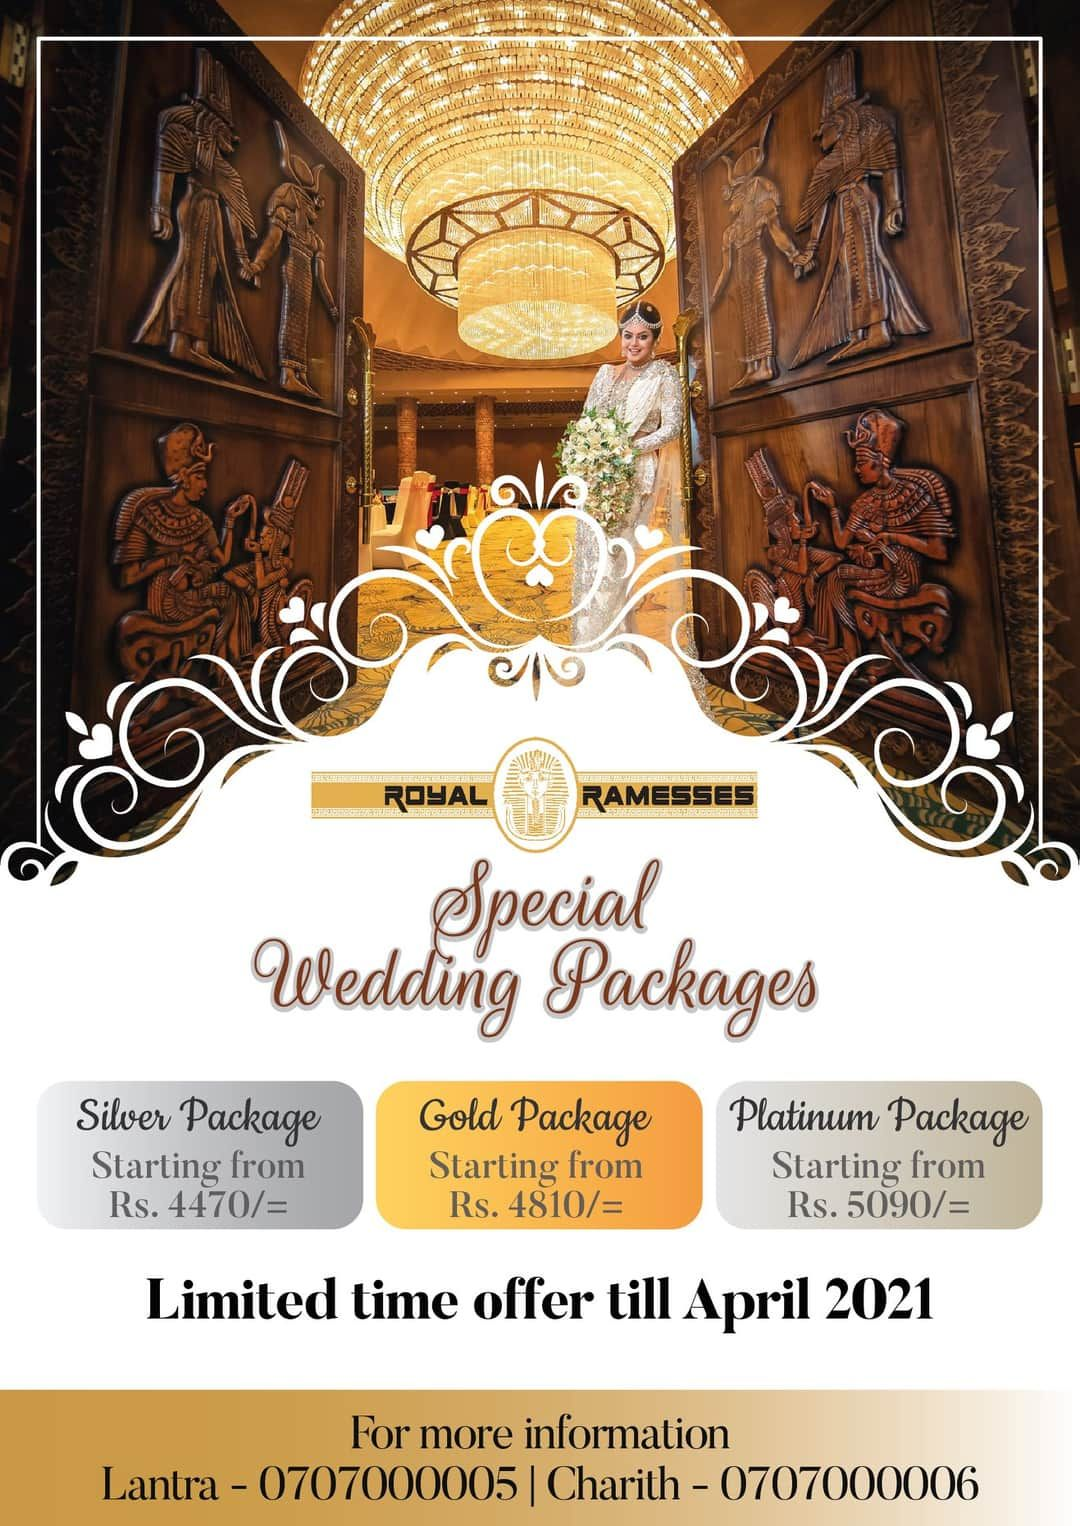 Royal Ramesses Offer Wedding Planning Packages Wedding Package Royal